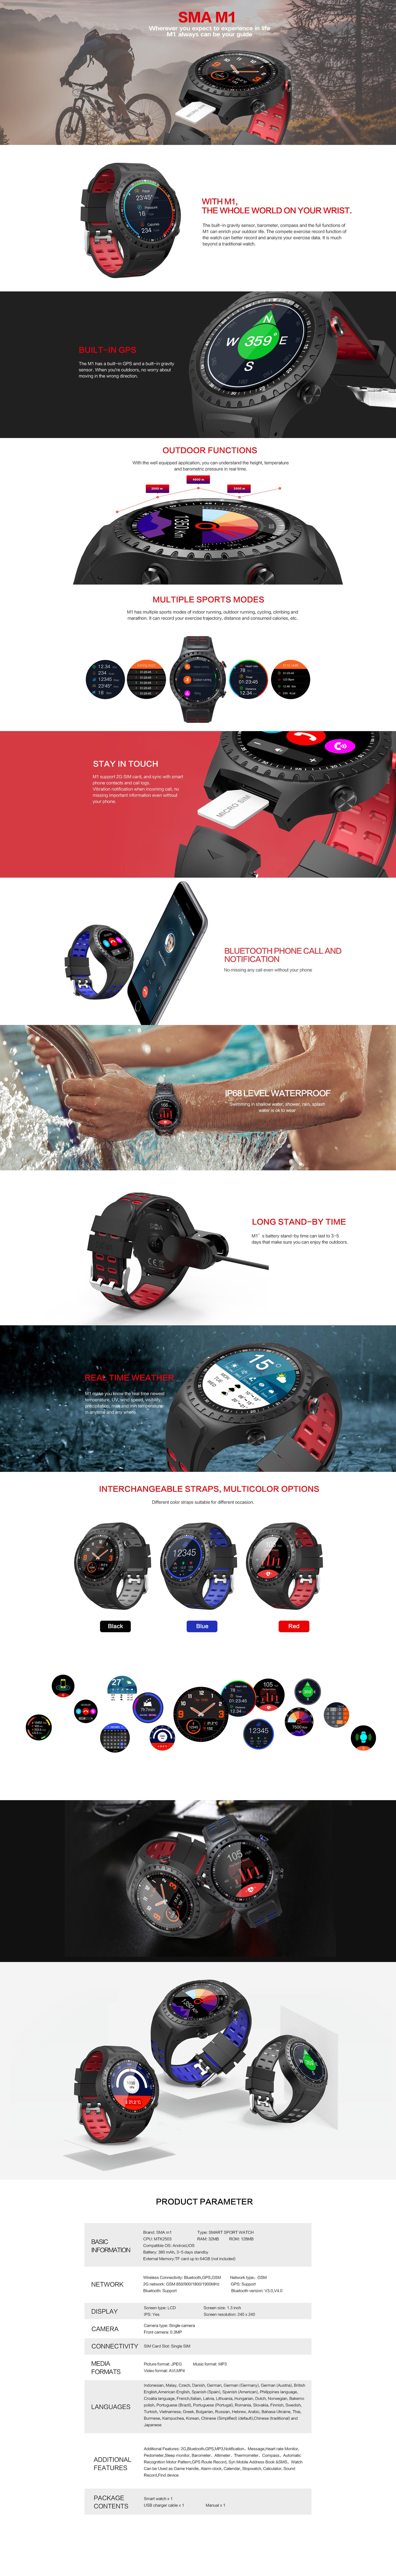 2018 New IP67 Waterproof Build-in GPS Smart Watch cheap sports watch